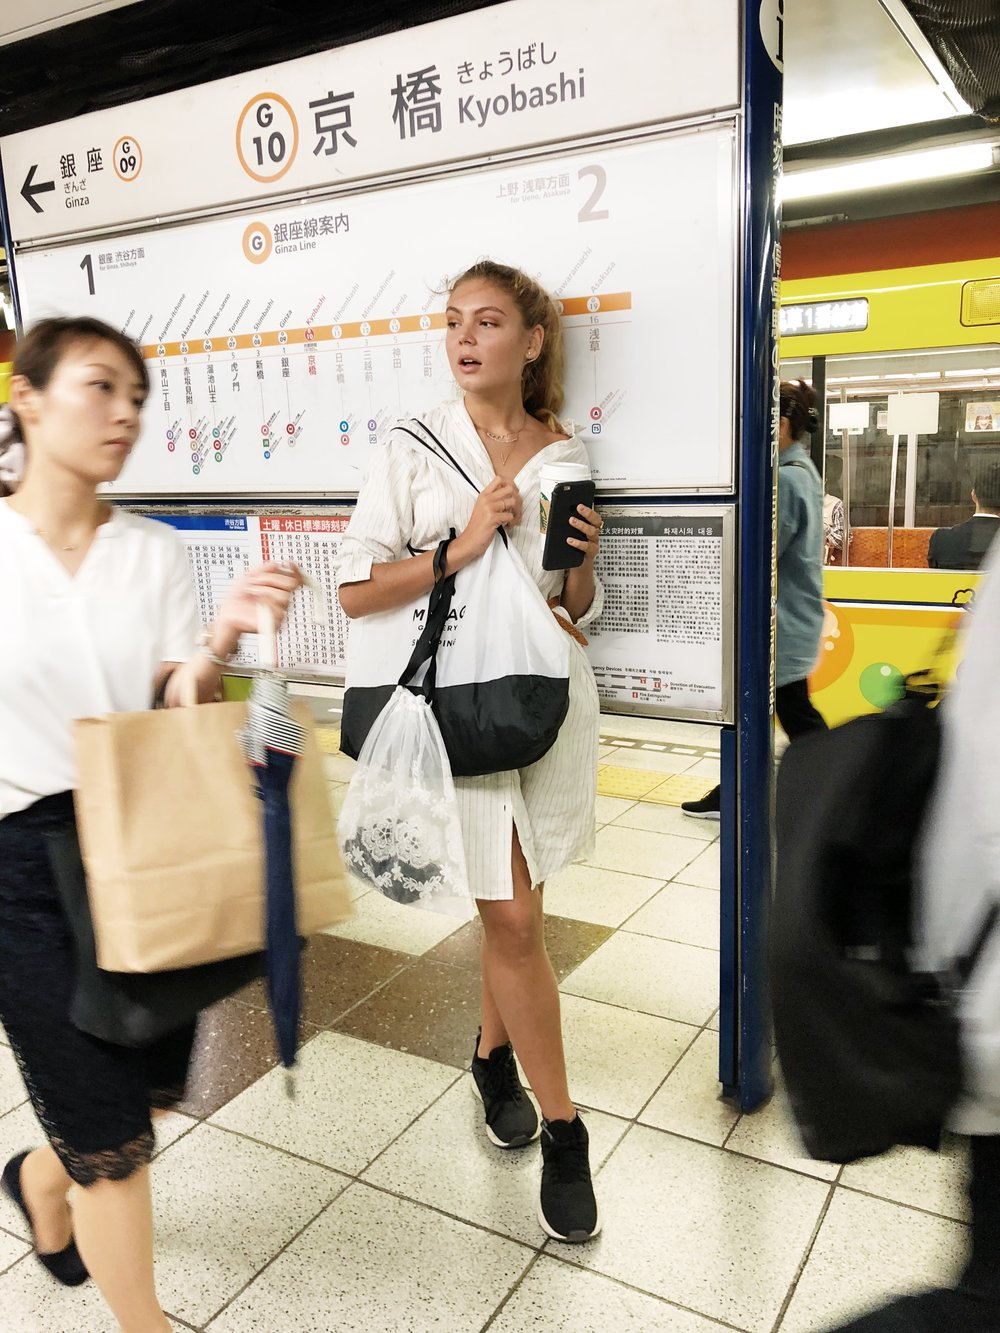 1.the tube - Go everywhere with the subway you guys! The easiest and cheapest way to get around Tokyo is under ground. The system is really easy to understand even if you can't read Japanese. Every station has a letter and a number so it is no problem finding your way.Celeste carries her stuff around town in a Bag-all folding World traveller tote and a Lace bag.